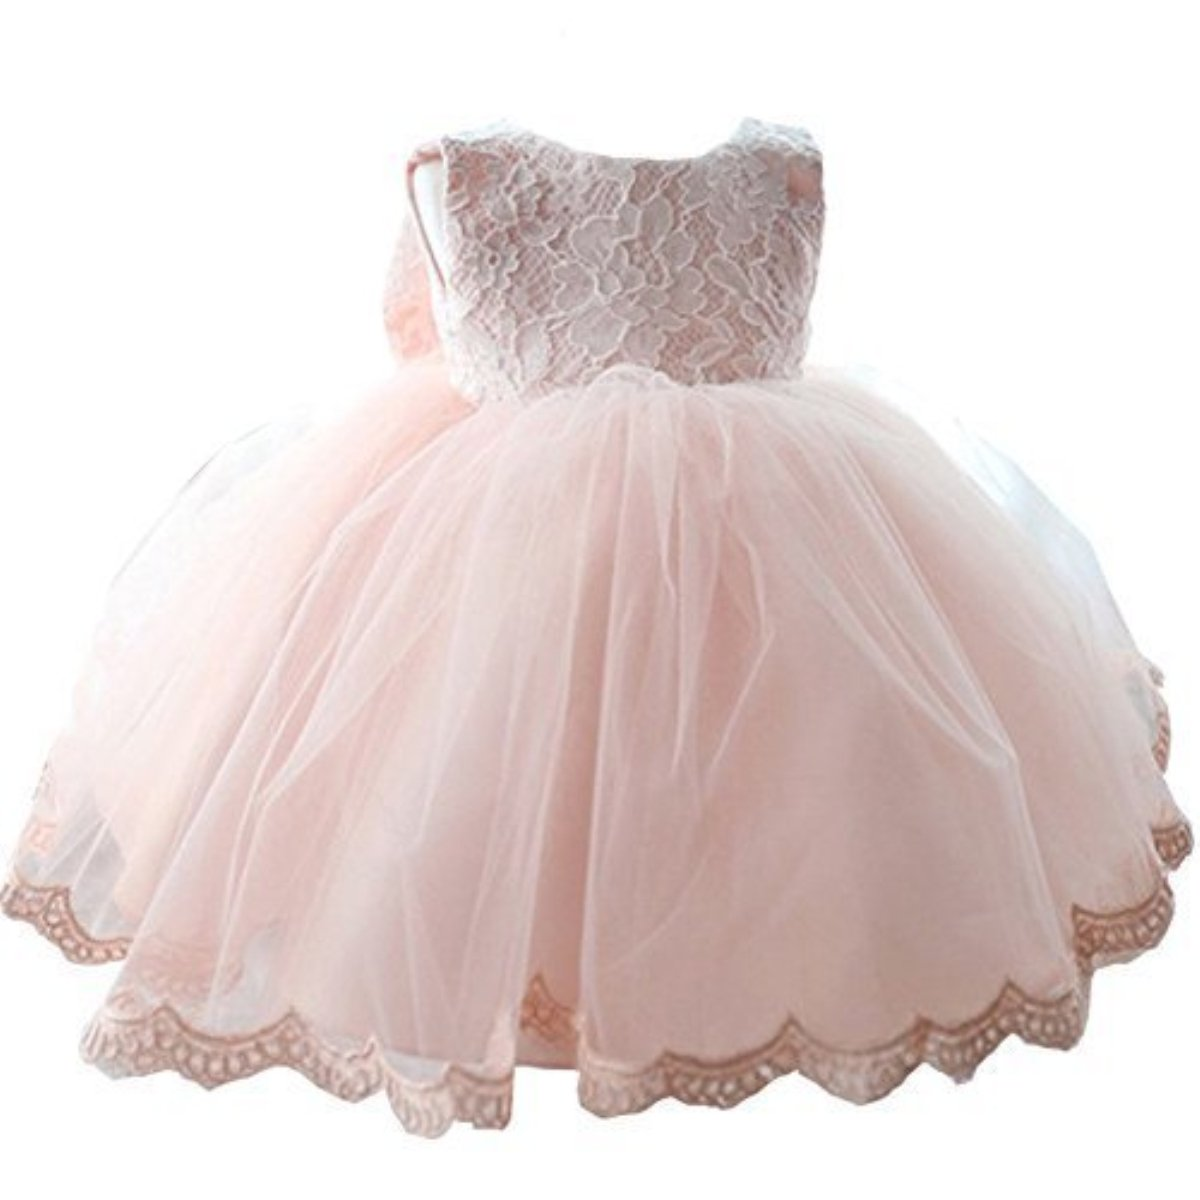 cade05b21cc9f Amazon.com: NNJXD Girls' Tulle Flower Princess Wedding Dress for Toddler  and Baby Girl: Clothing